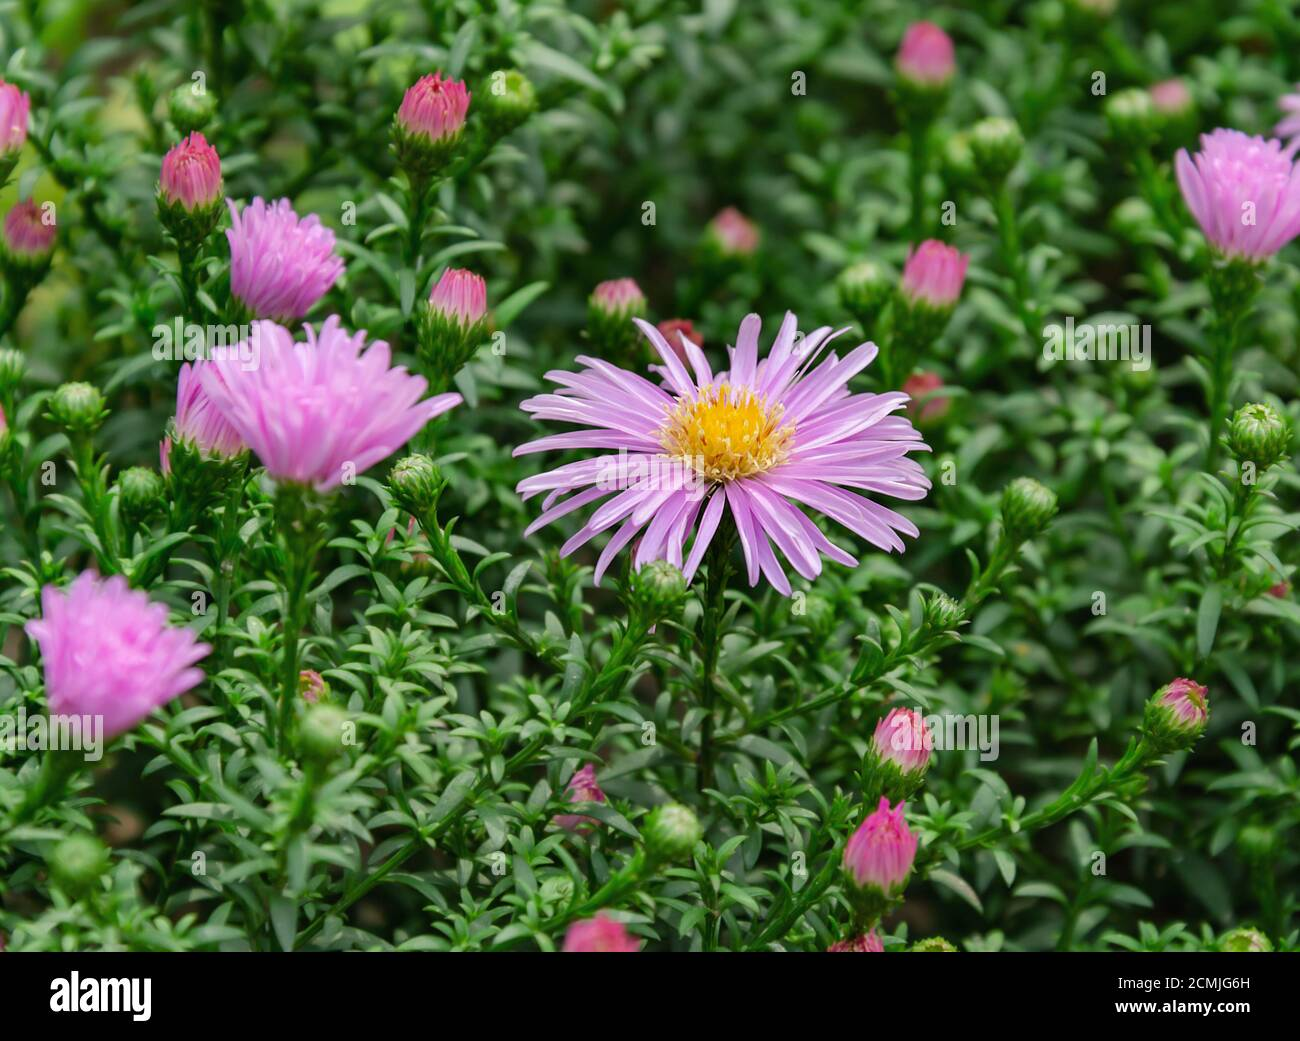 purple autumn flower on a background of green leaves, close up Stock Photo